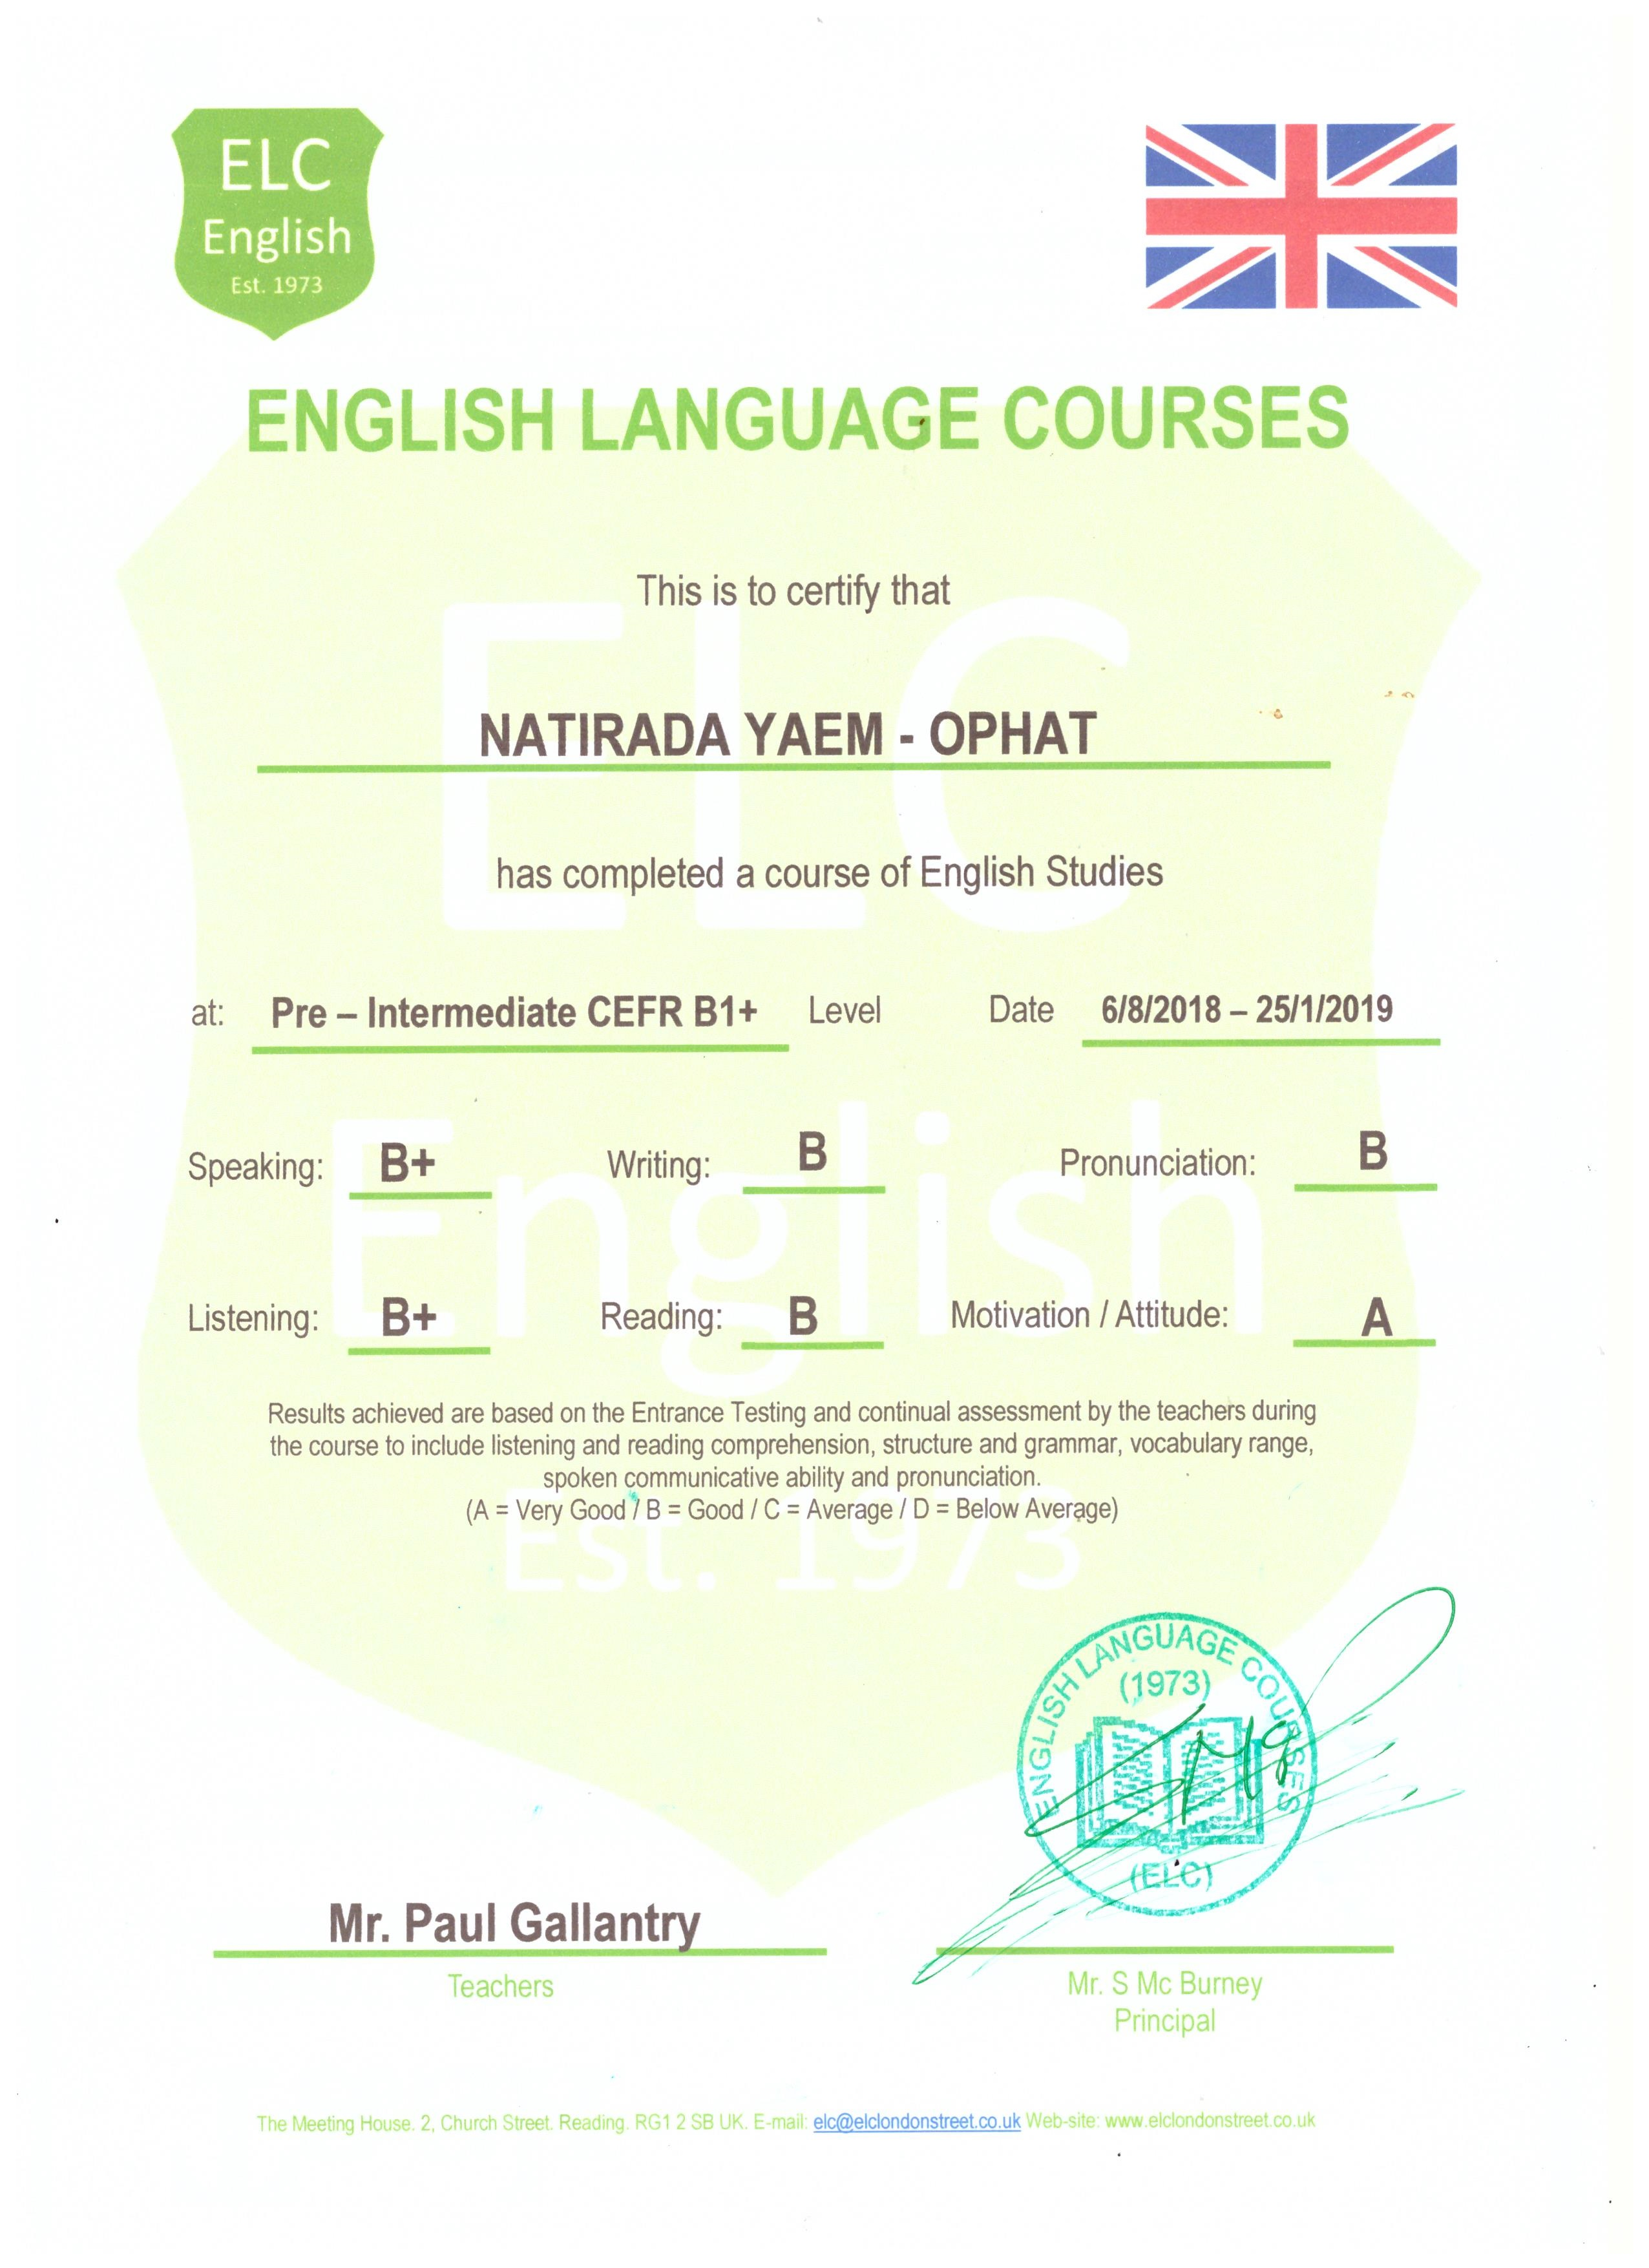 English Language Courses in Reading